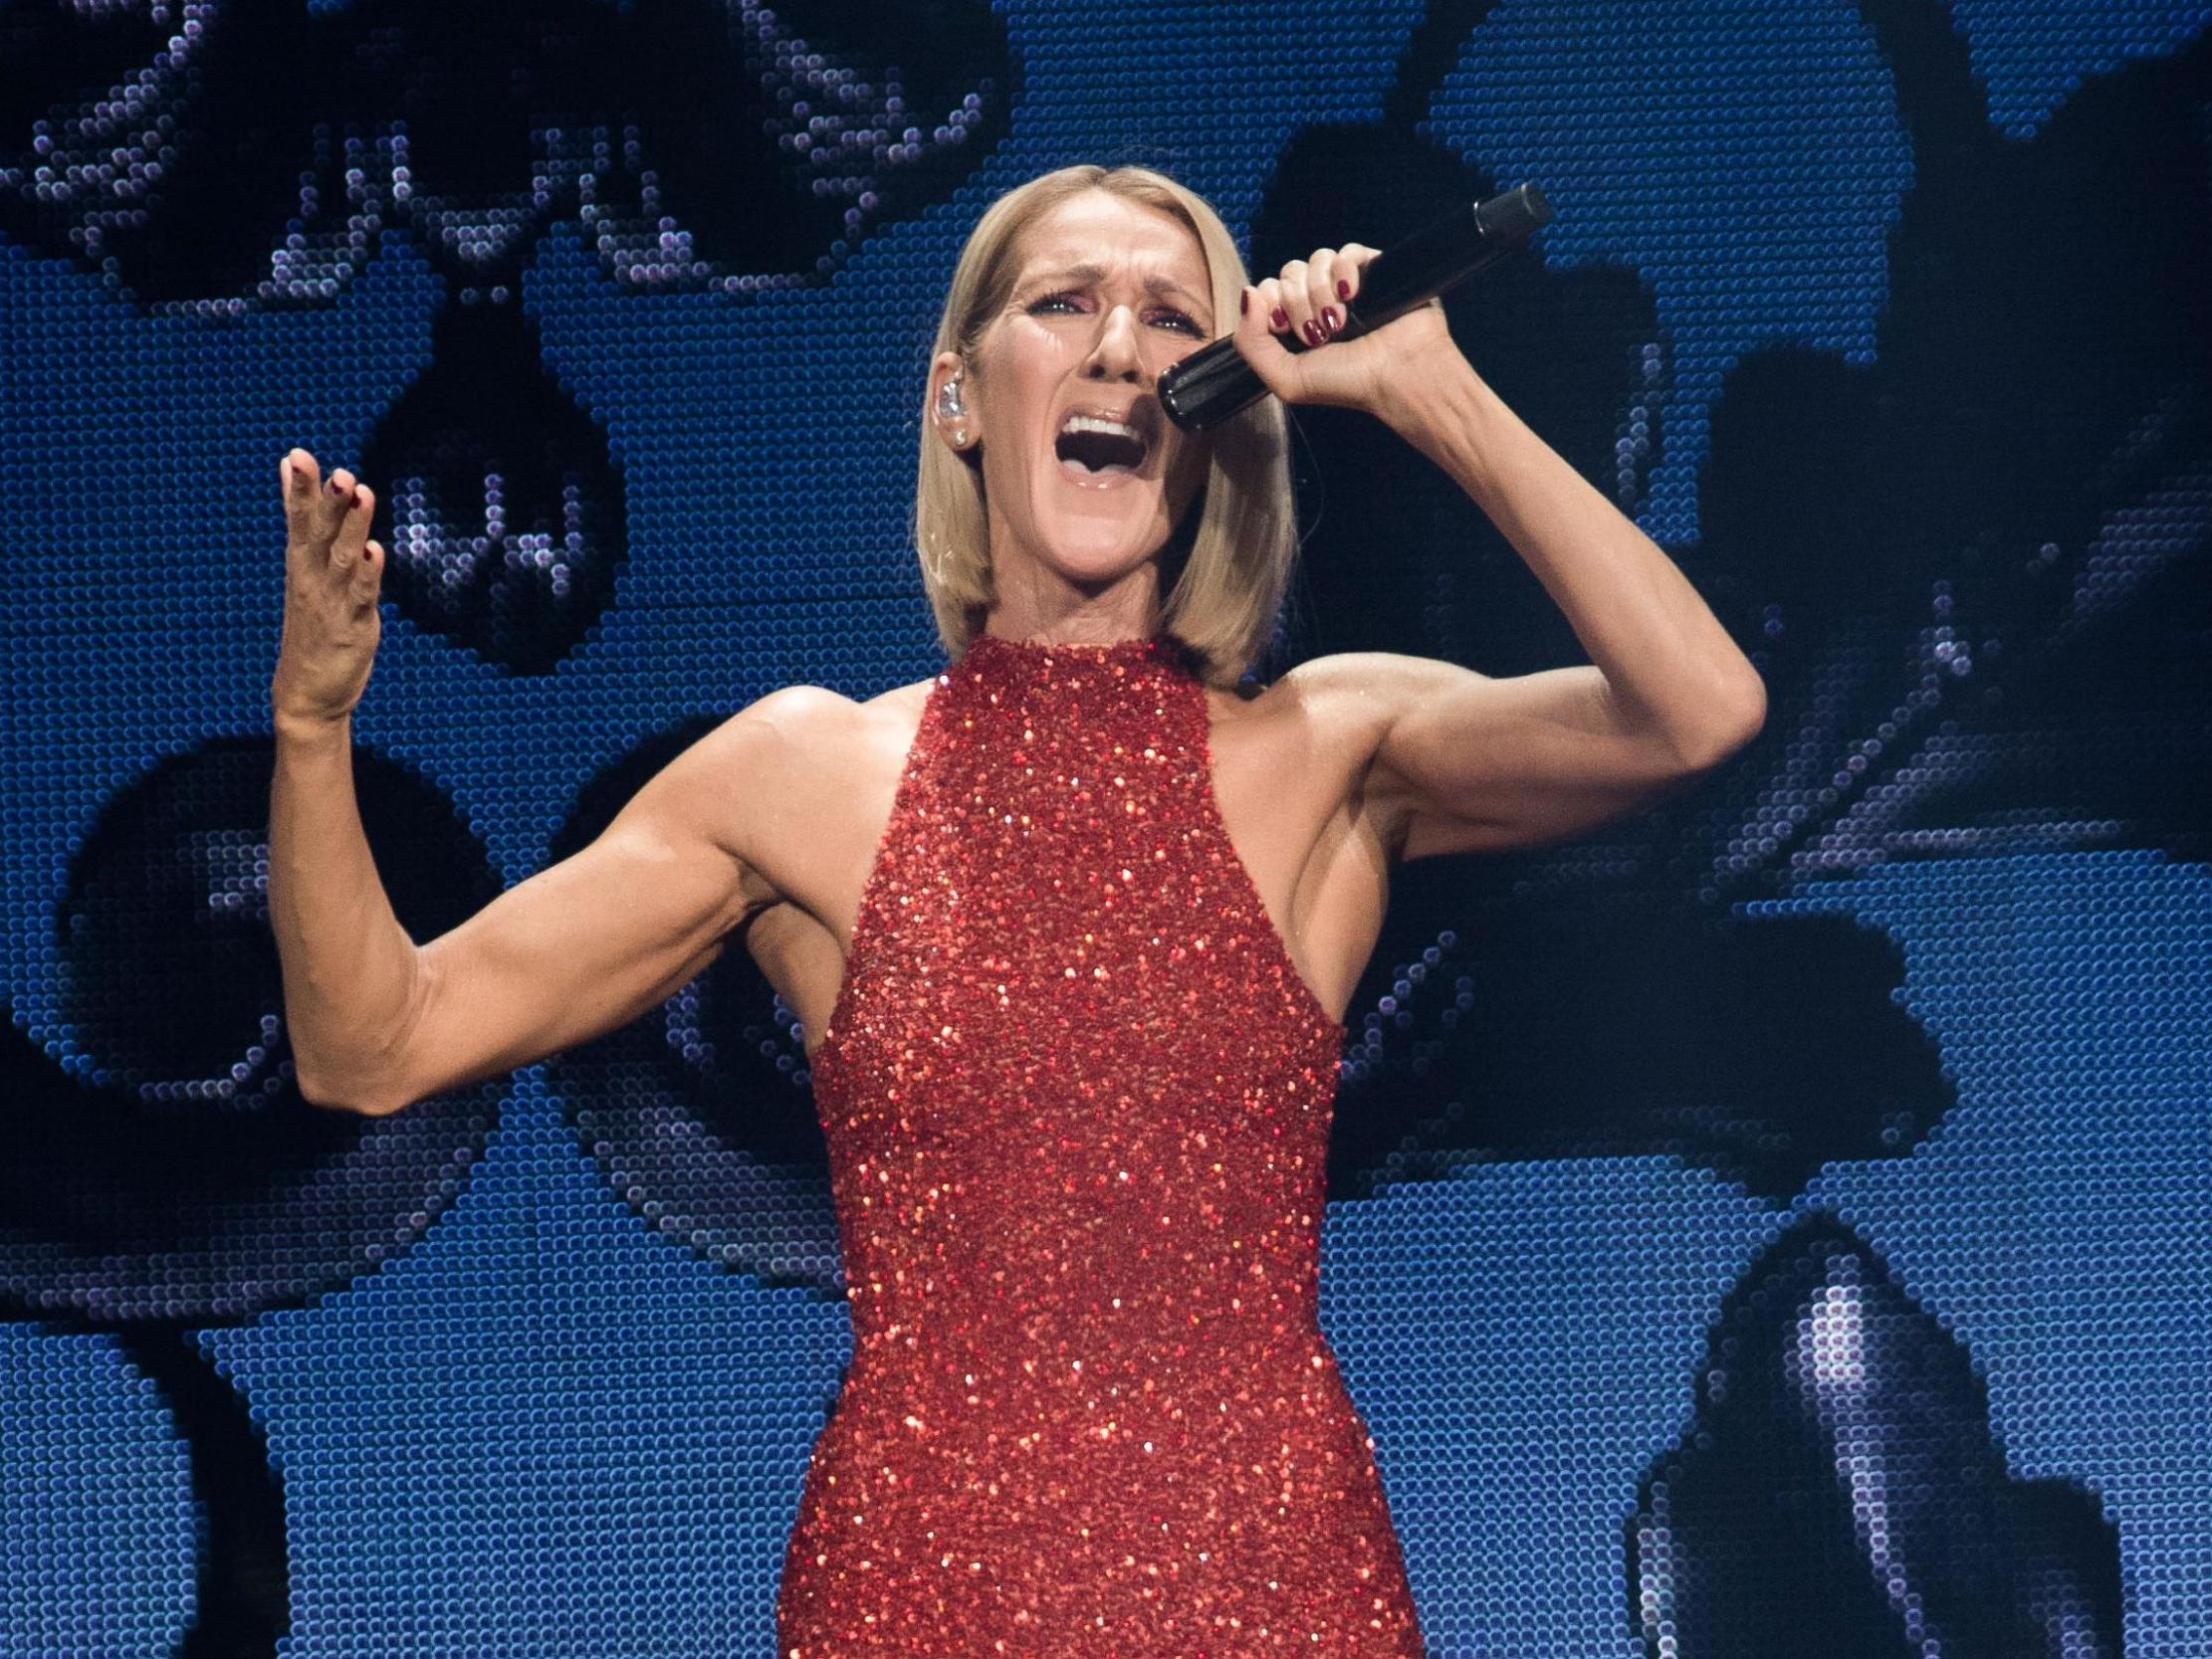 Celine Dion responds to body shamers: 'You can't please everyone'